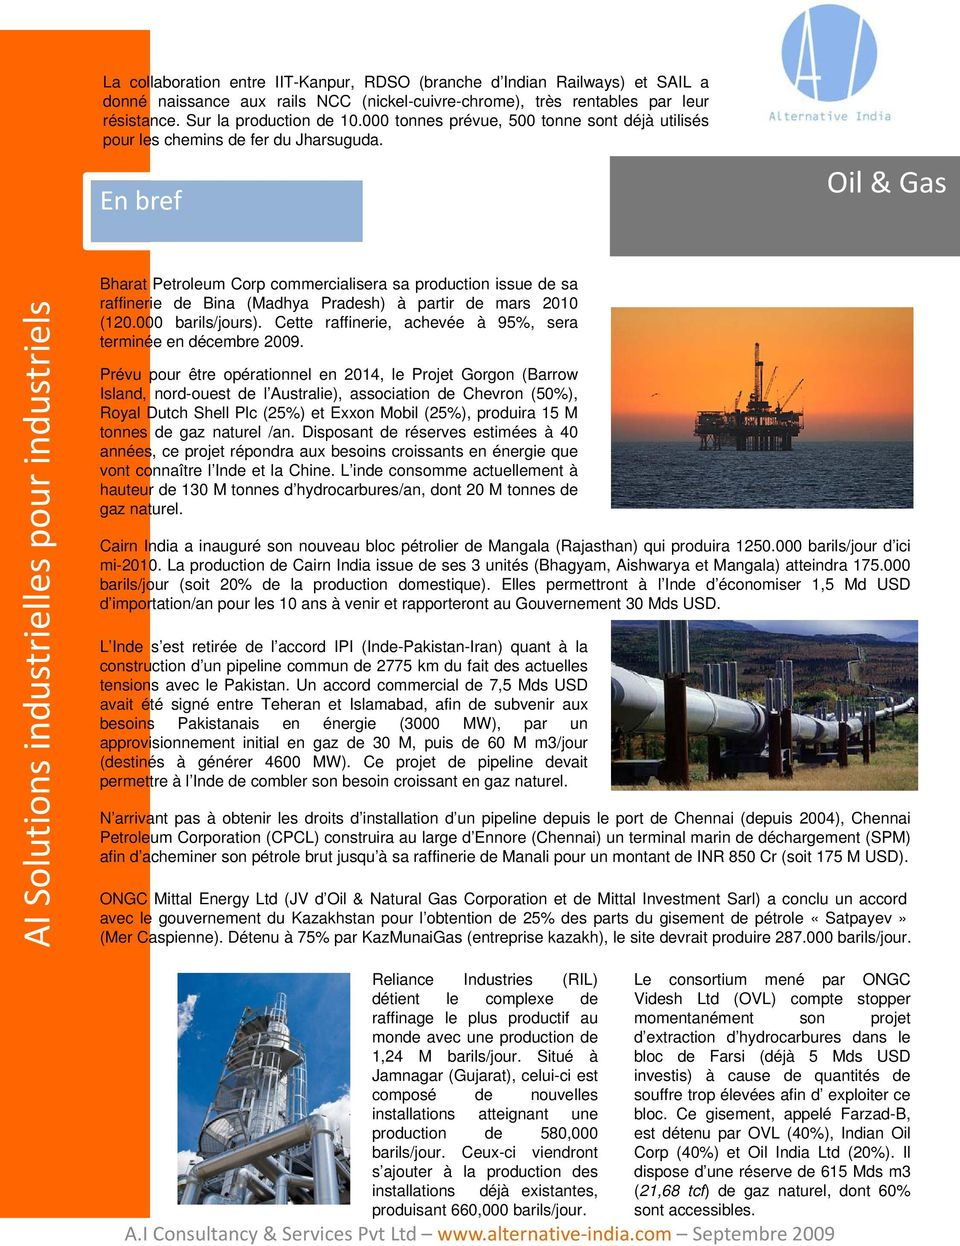 En bref Oil & Gas Bharat Petroleum Corp commercialisera sa production issue de sa raffinerie de Bina (Madhya Pradesh) à partir de mars 2010 (120.000 barils/jours).